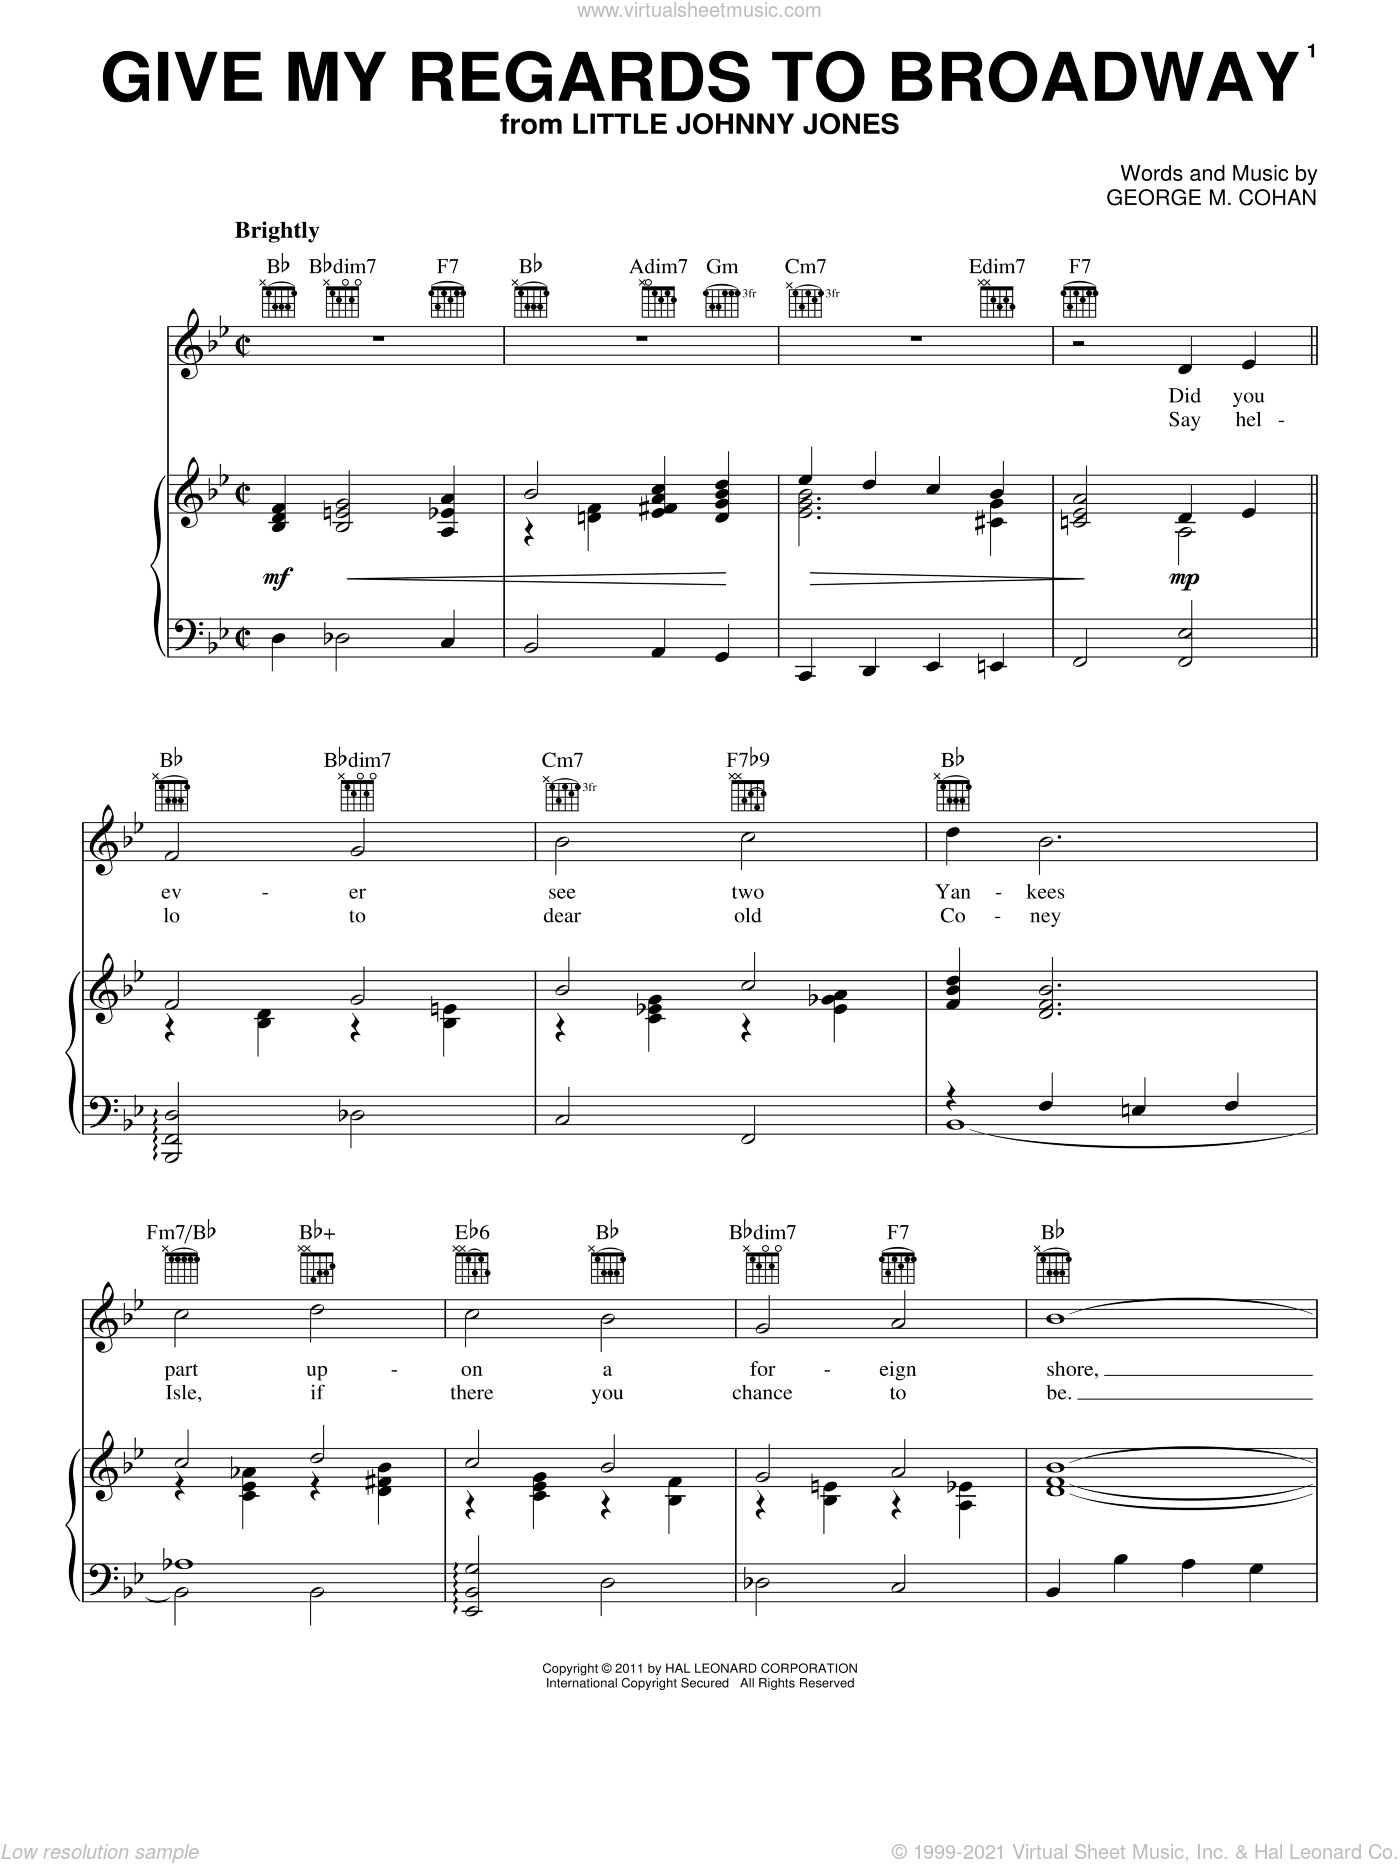 Give My Regards To Broadway sheet music for voice, piano or guitar by Showtune and George Cohan, intermediate voice, piano or guitar. Score Image Preview.